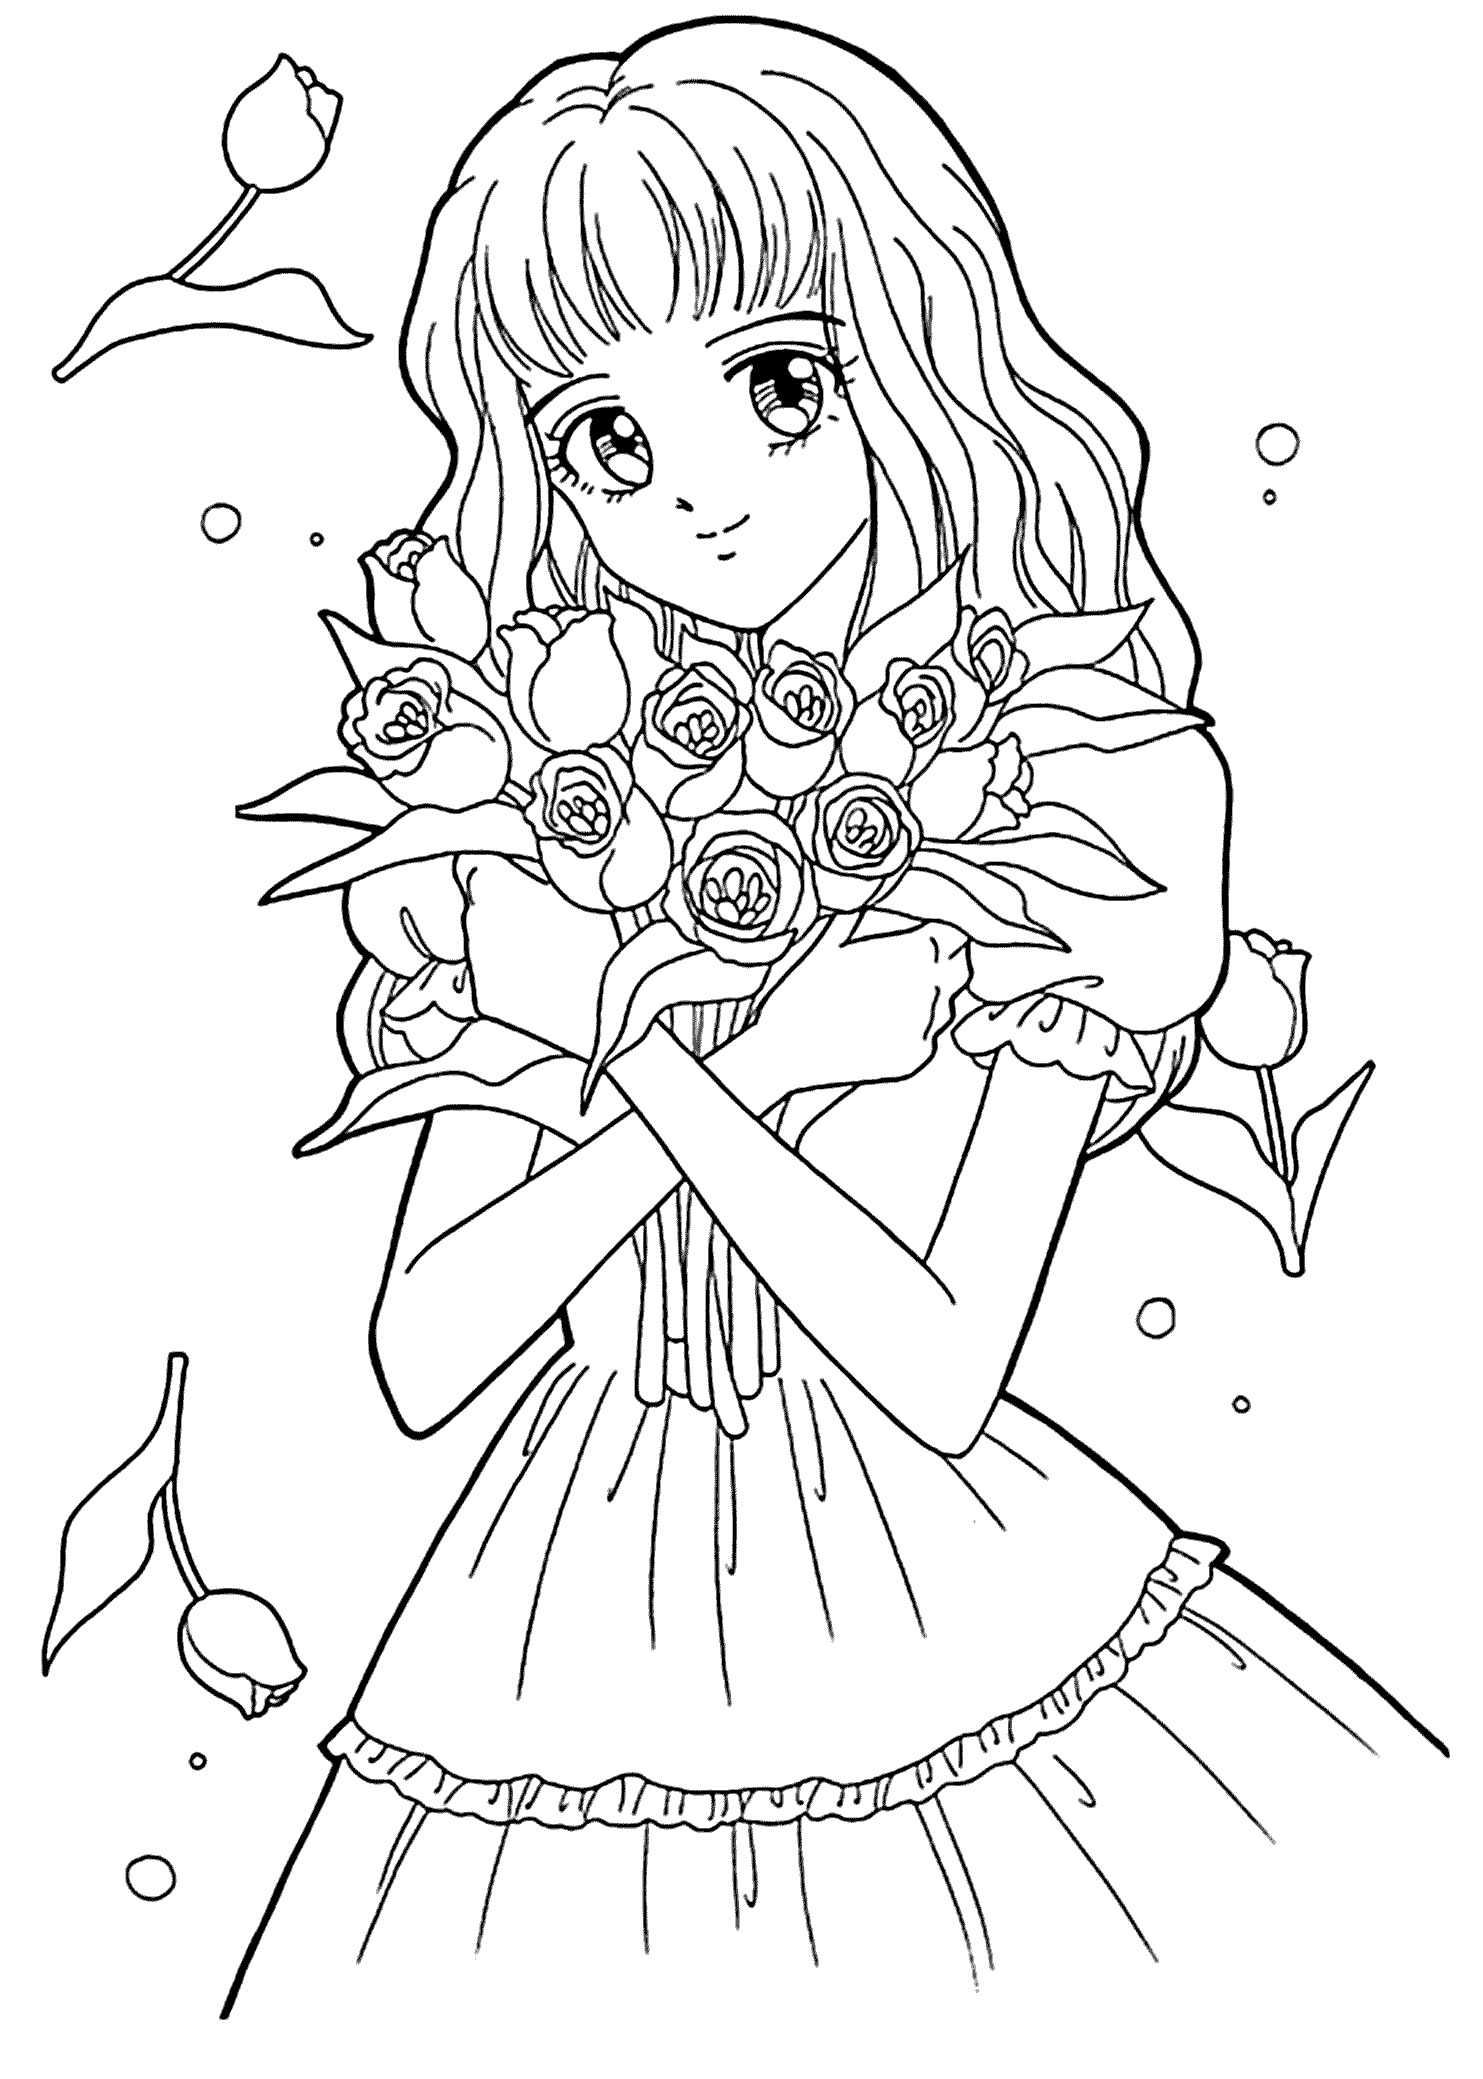 Coloring Pages For Girls Teens